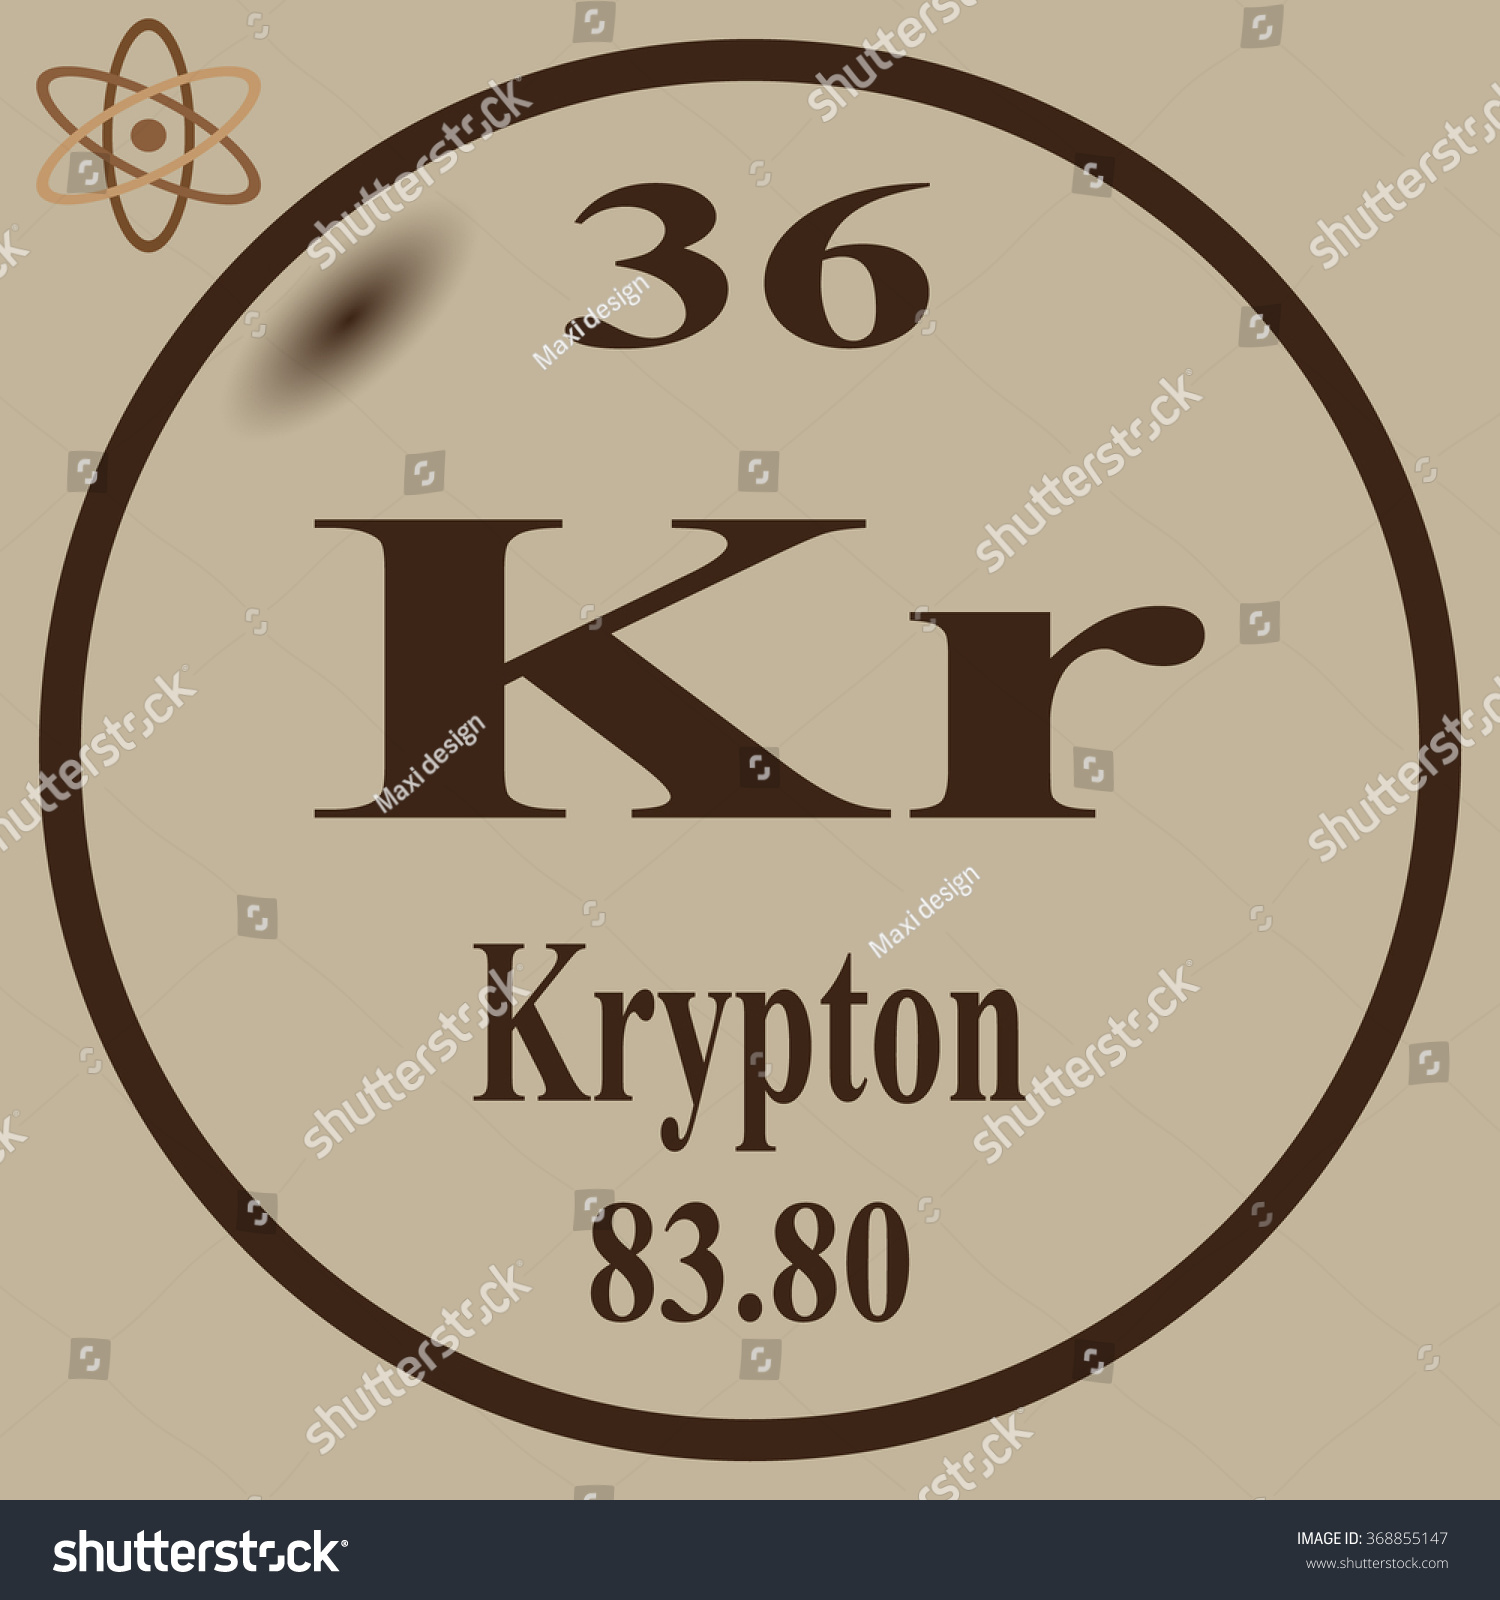 Periodic table elements krypton stock photo photo vector periodic table of elements krypton urtaz Choice Image